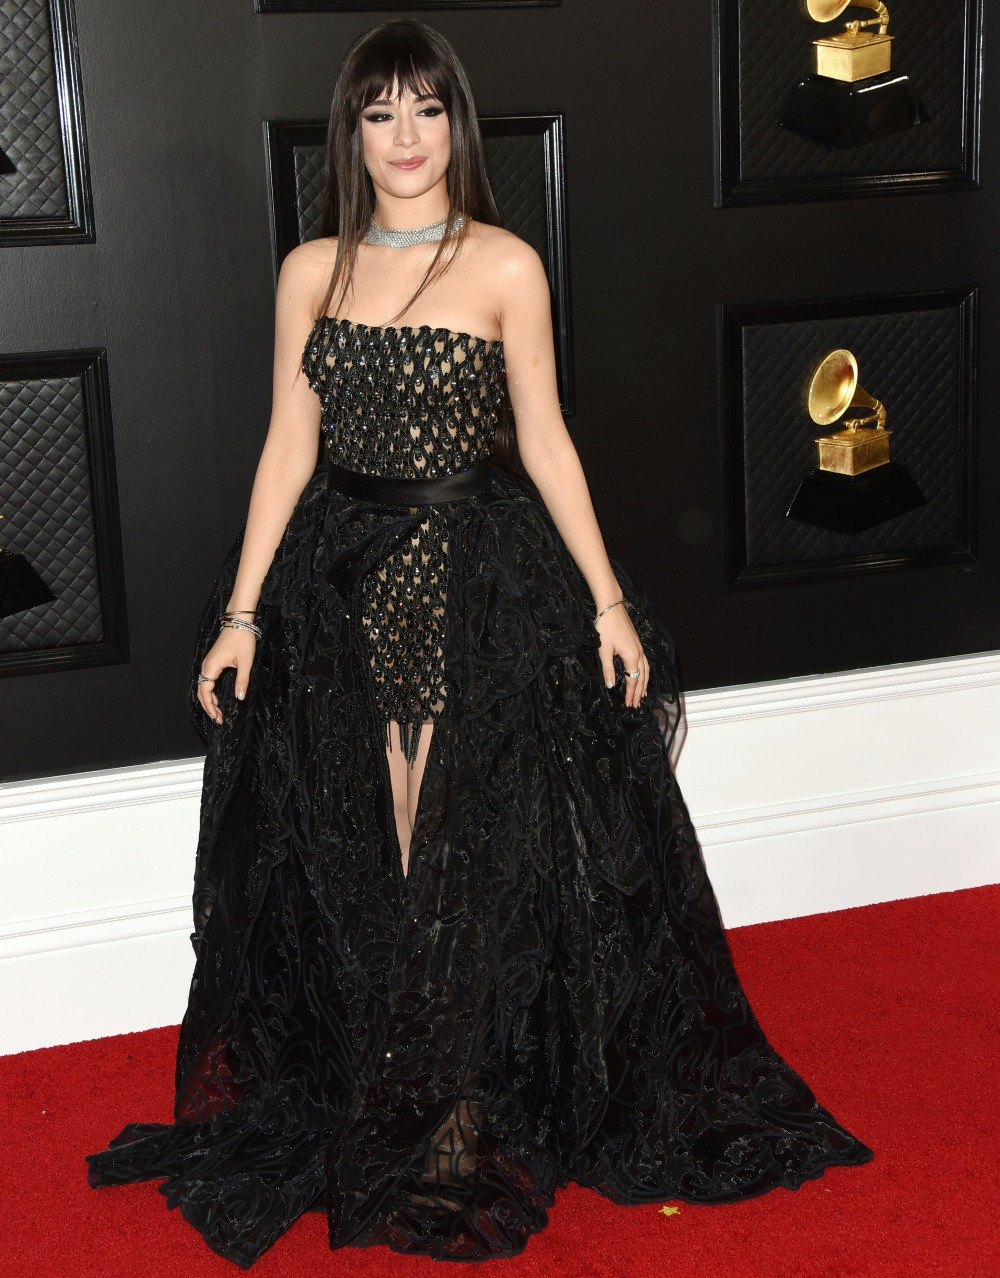 Camila Cabello arrives at the 62nd Annual GRAMMY Awards at Staples Center on January 26, 2020 in Los Angeles, California